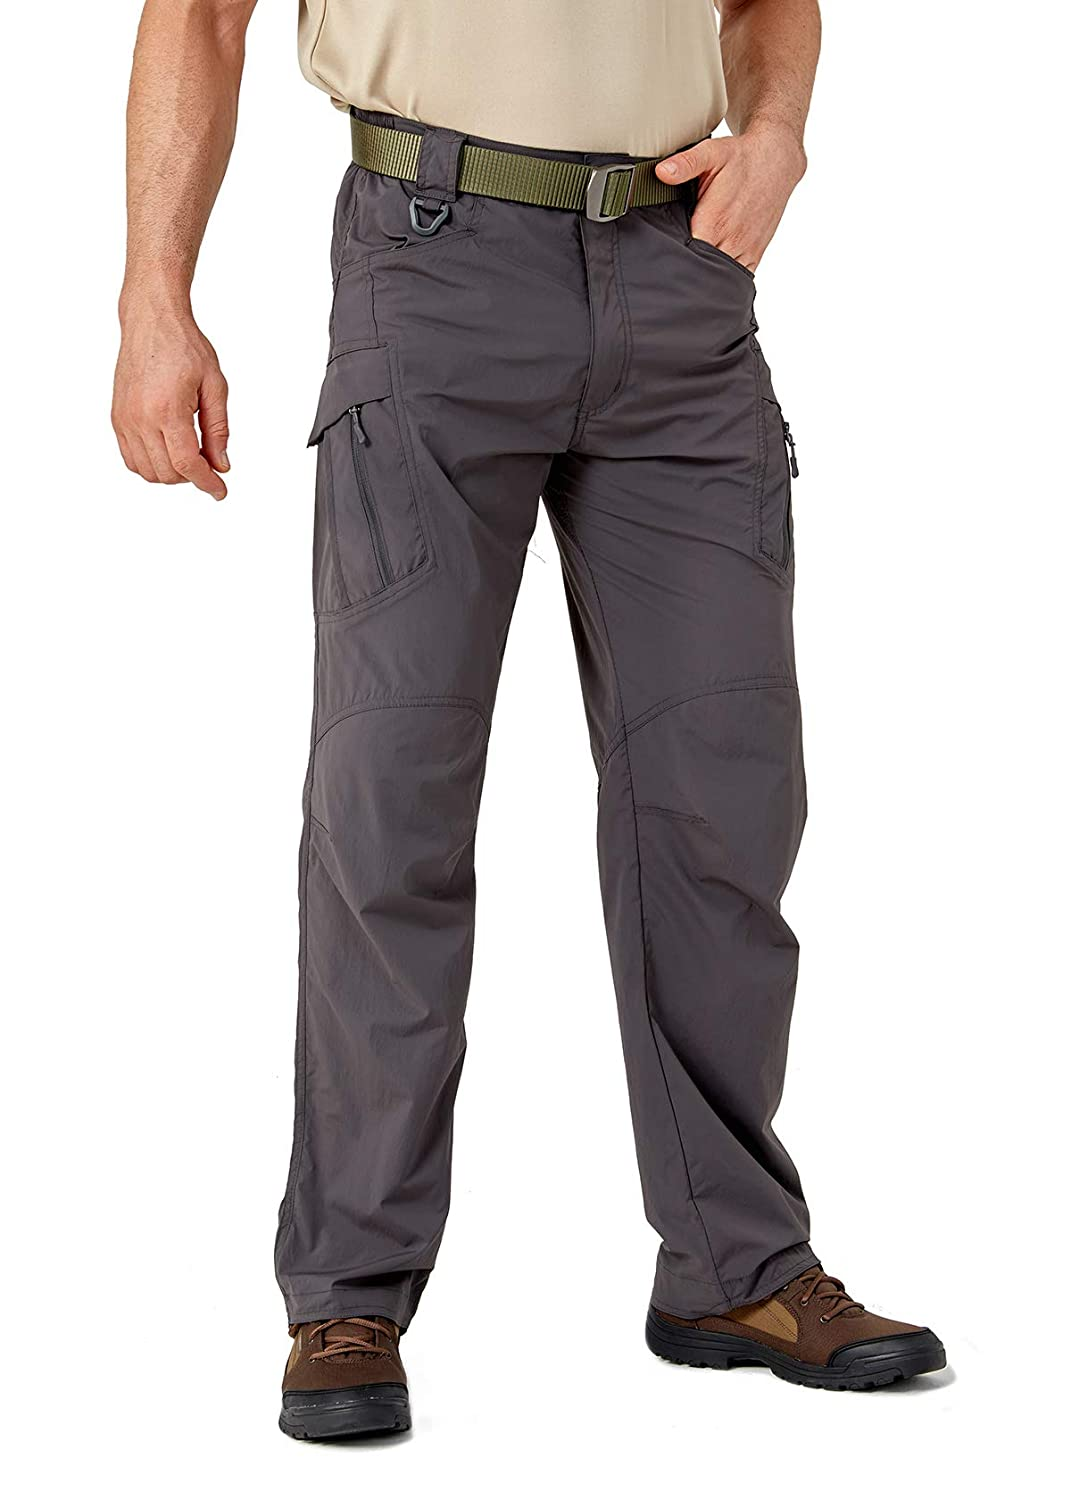 EKLENTSON Mens Quick Dry Cargo Pants Outdoor Elastic Camping Trekking Fishing Hiking Trousers Multi Pockets